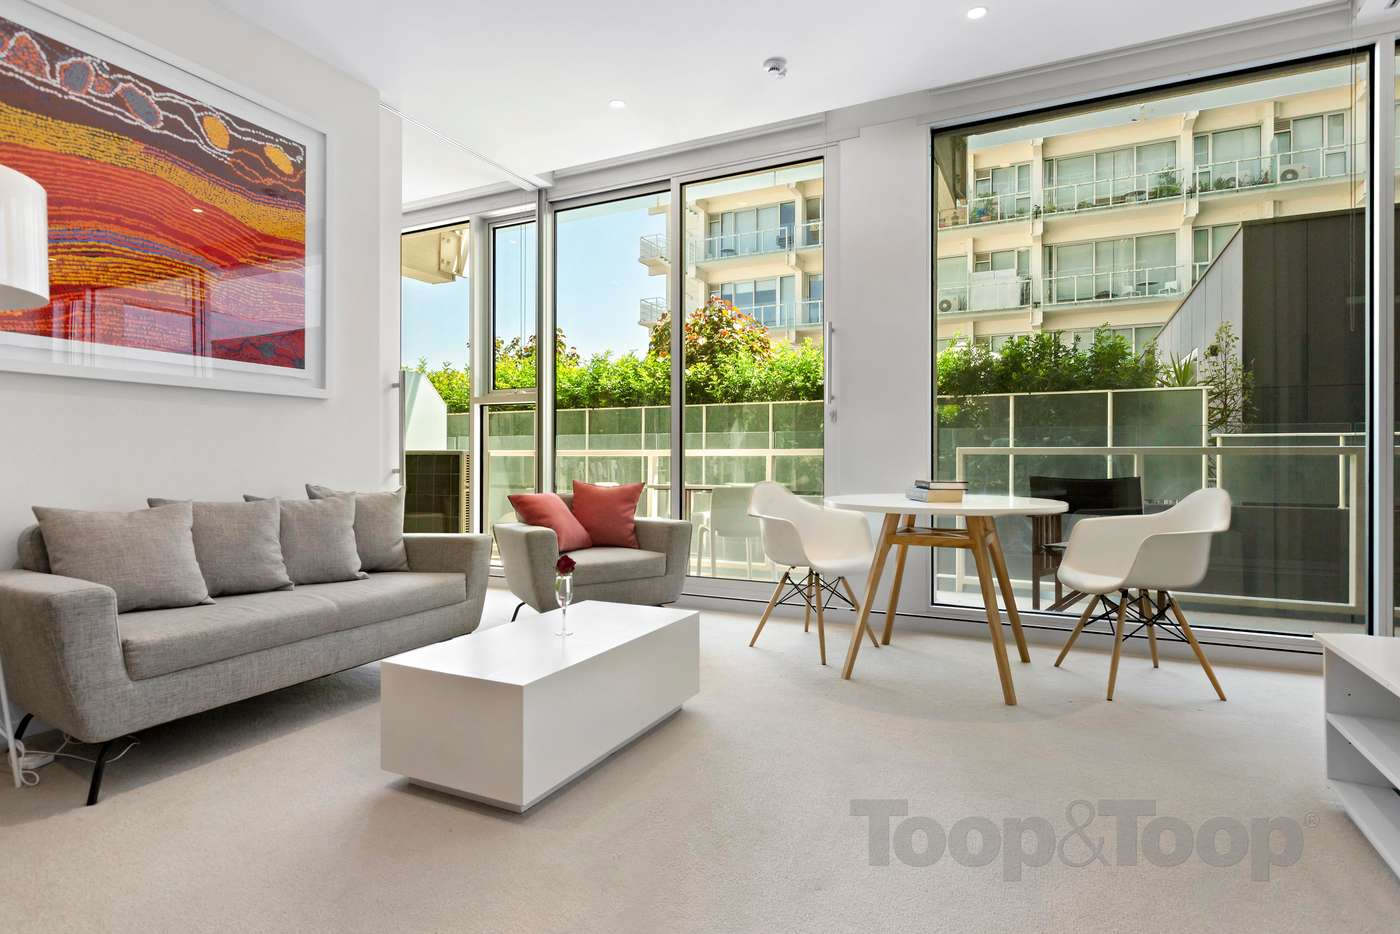 Fifth view of Homely apartment listing, 215/33 Warwick Street, Walkerville SA 5081